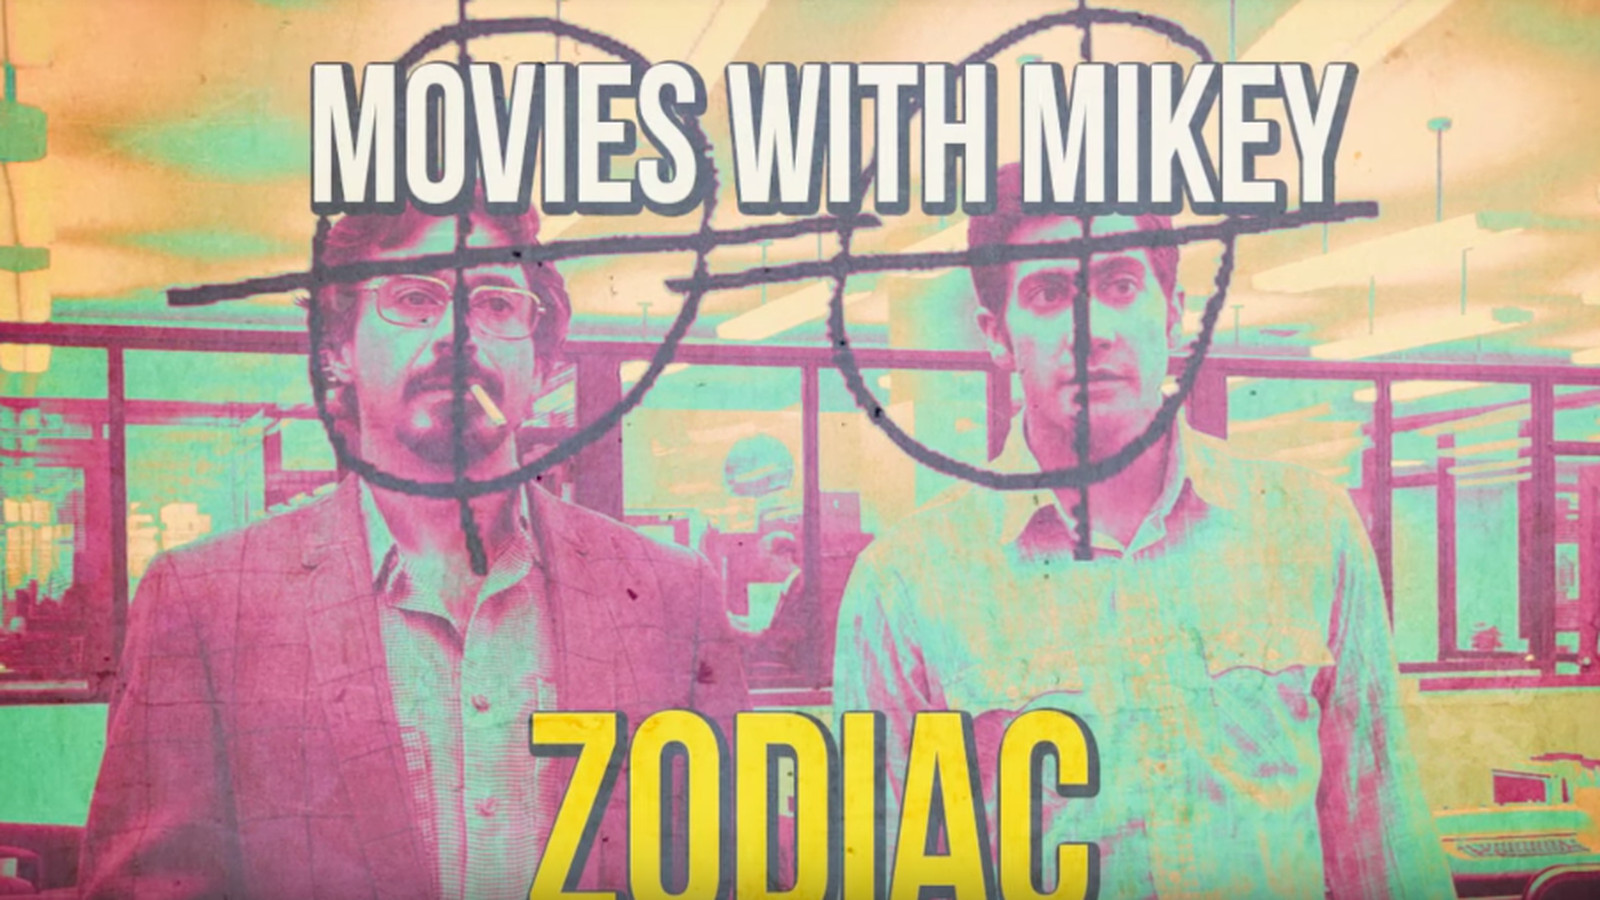 Movies with Mikey gets its first Emmy nomination